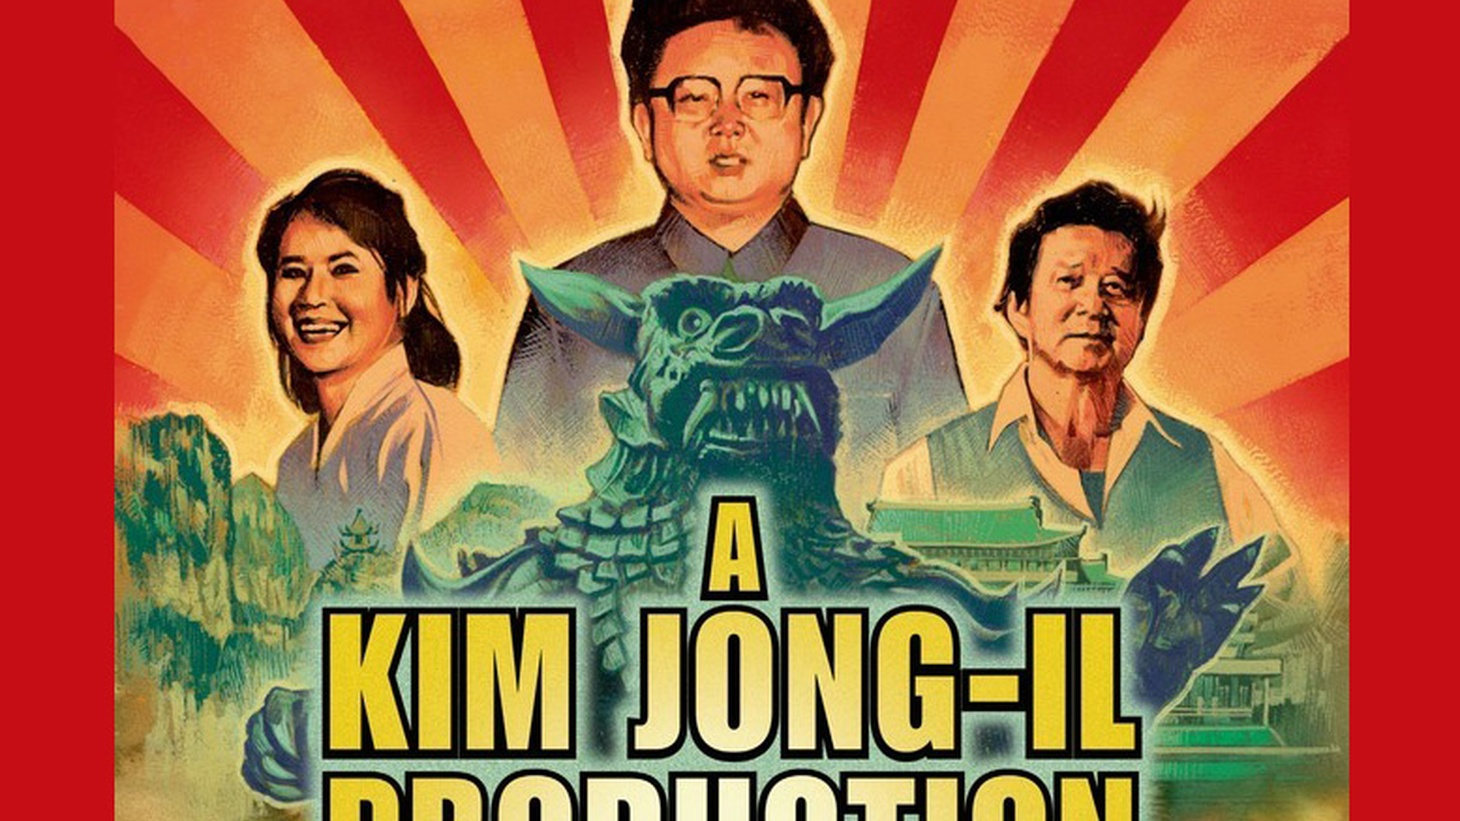 The movie The Interview is not kind to North Korea's current dictator. In the movie, Kim Jong-un is enamored of James Franco's TV host character. But the idea of a North Korean dictator obsessed with Western show biz isn't entirely fiction. Kim Jong-un's father, Kim Jong-il, was obsessed with movies.